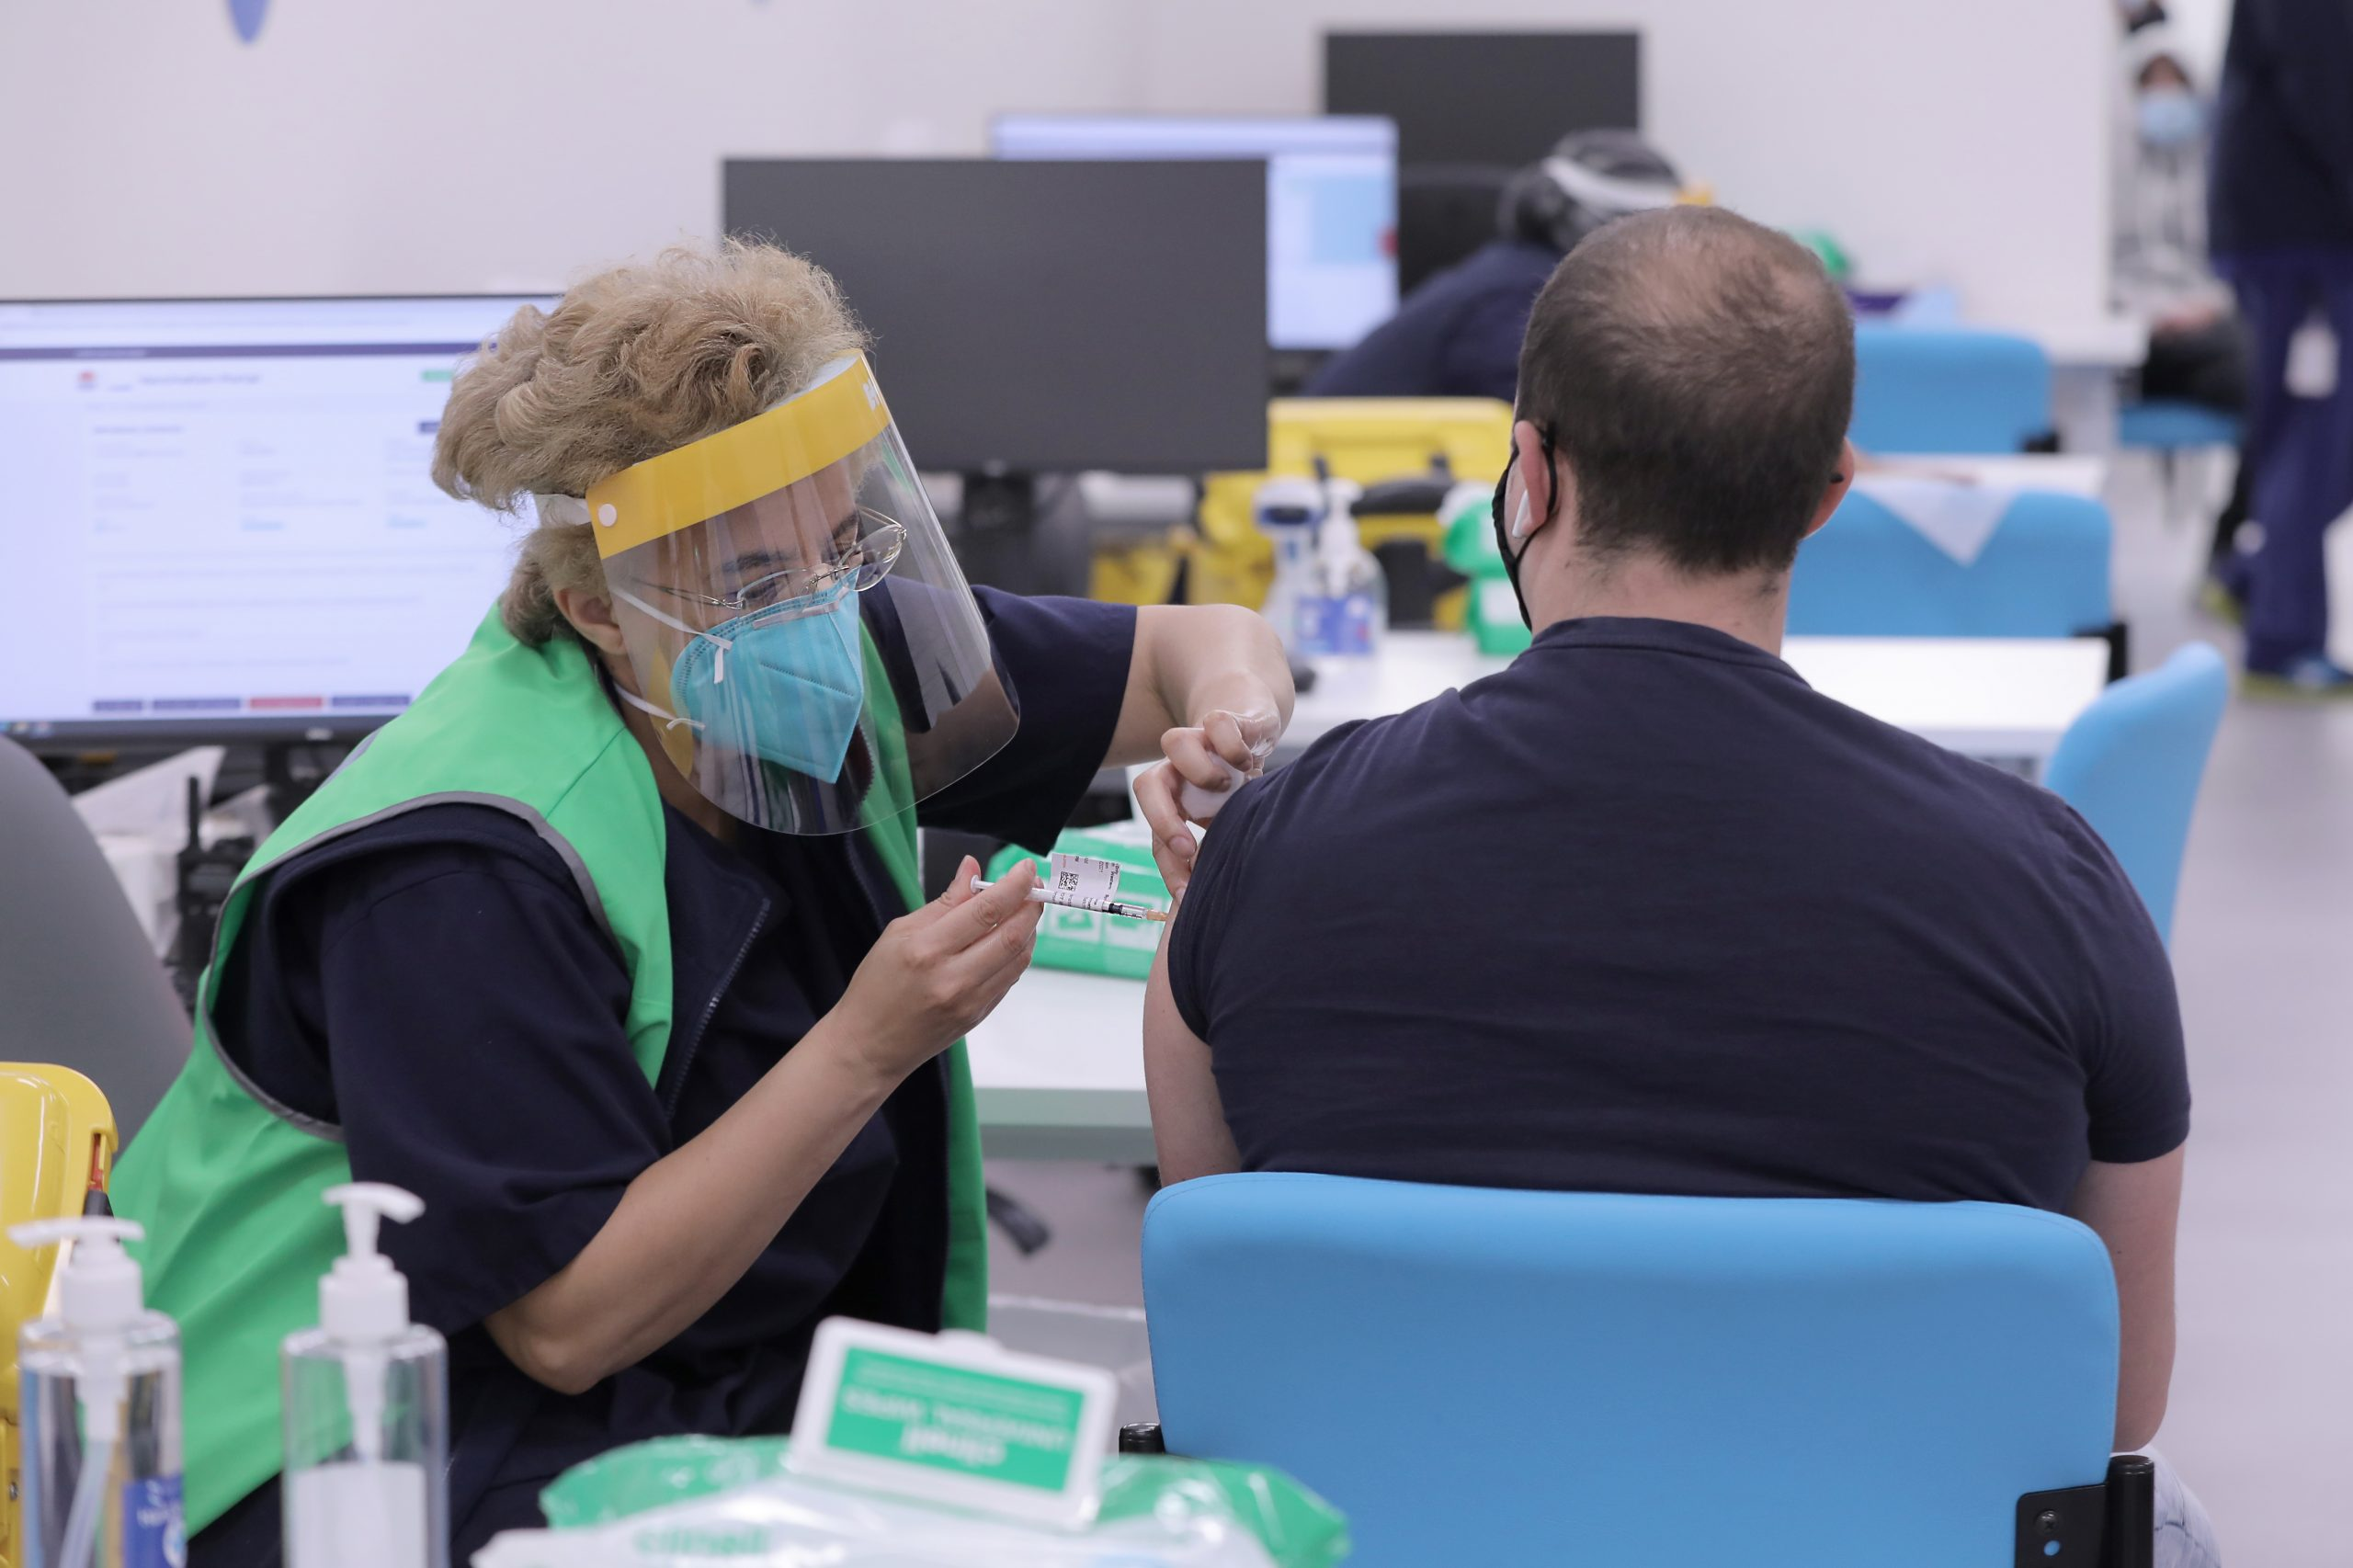 Construction workers from affected Sydney LGAs given vaccine priority